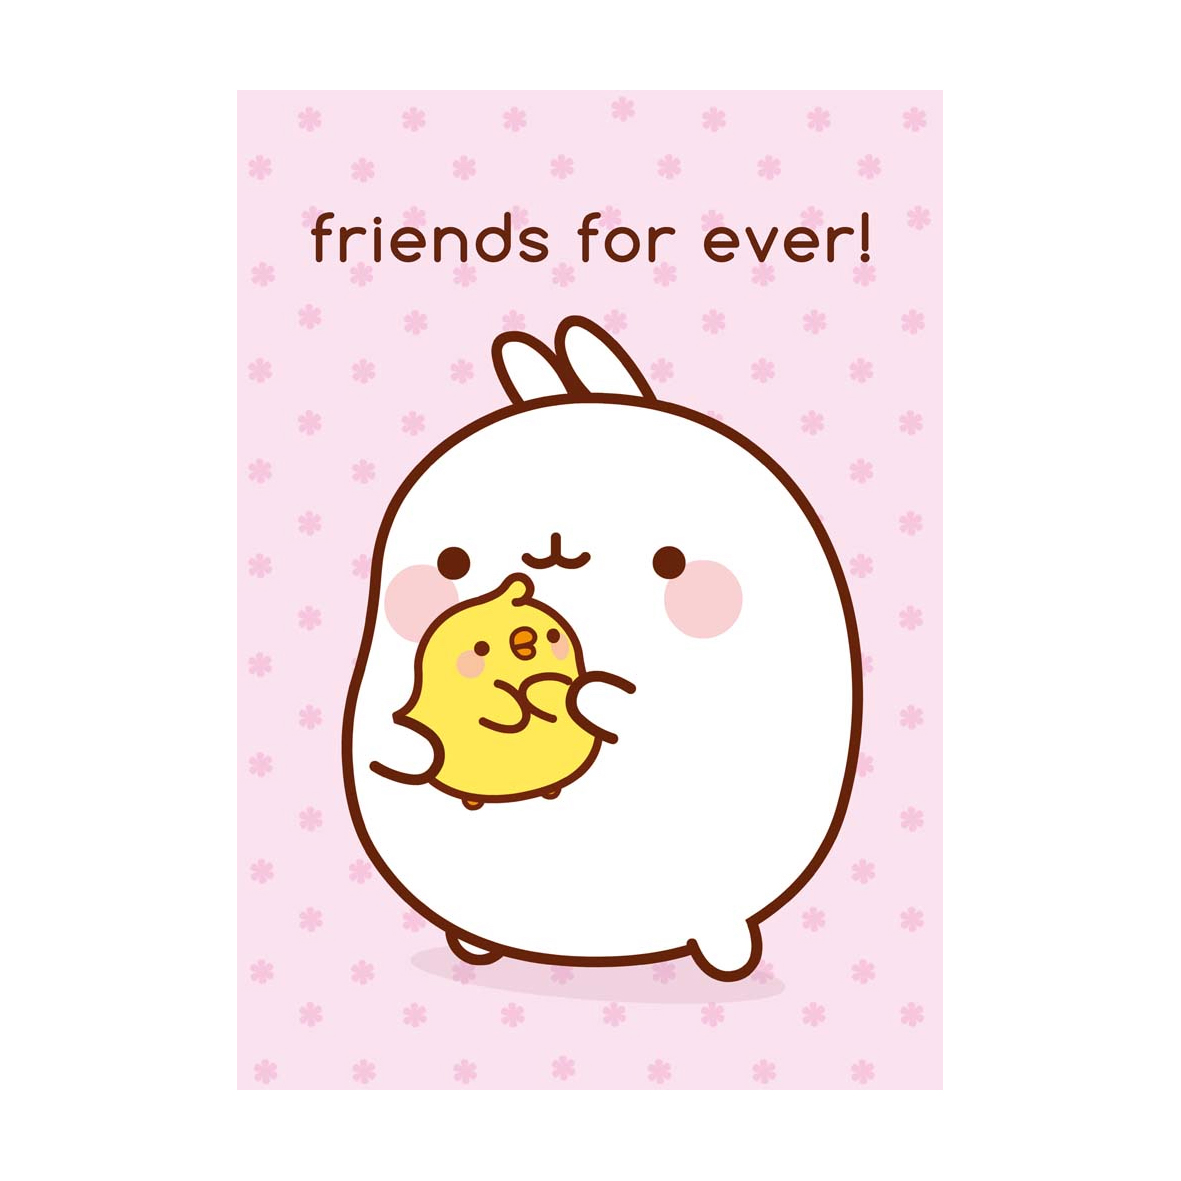 Molang piu piu friends for ever greeting card cards wrap molang piu piu friends for ever greeting card m4hsunfo